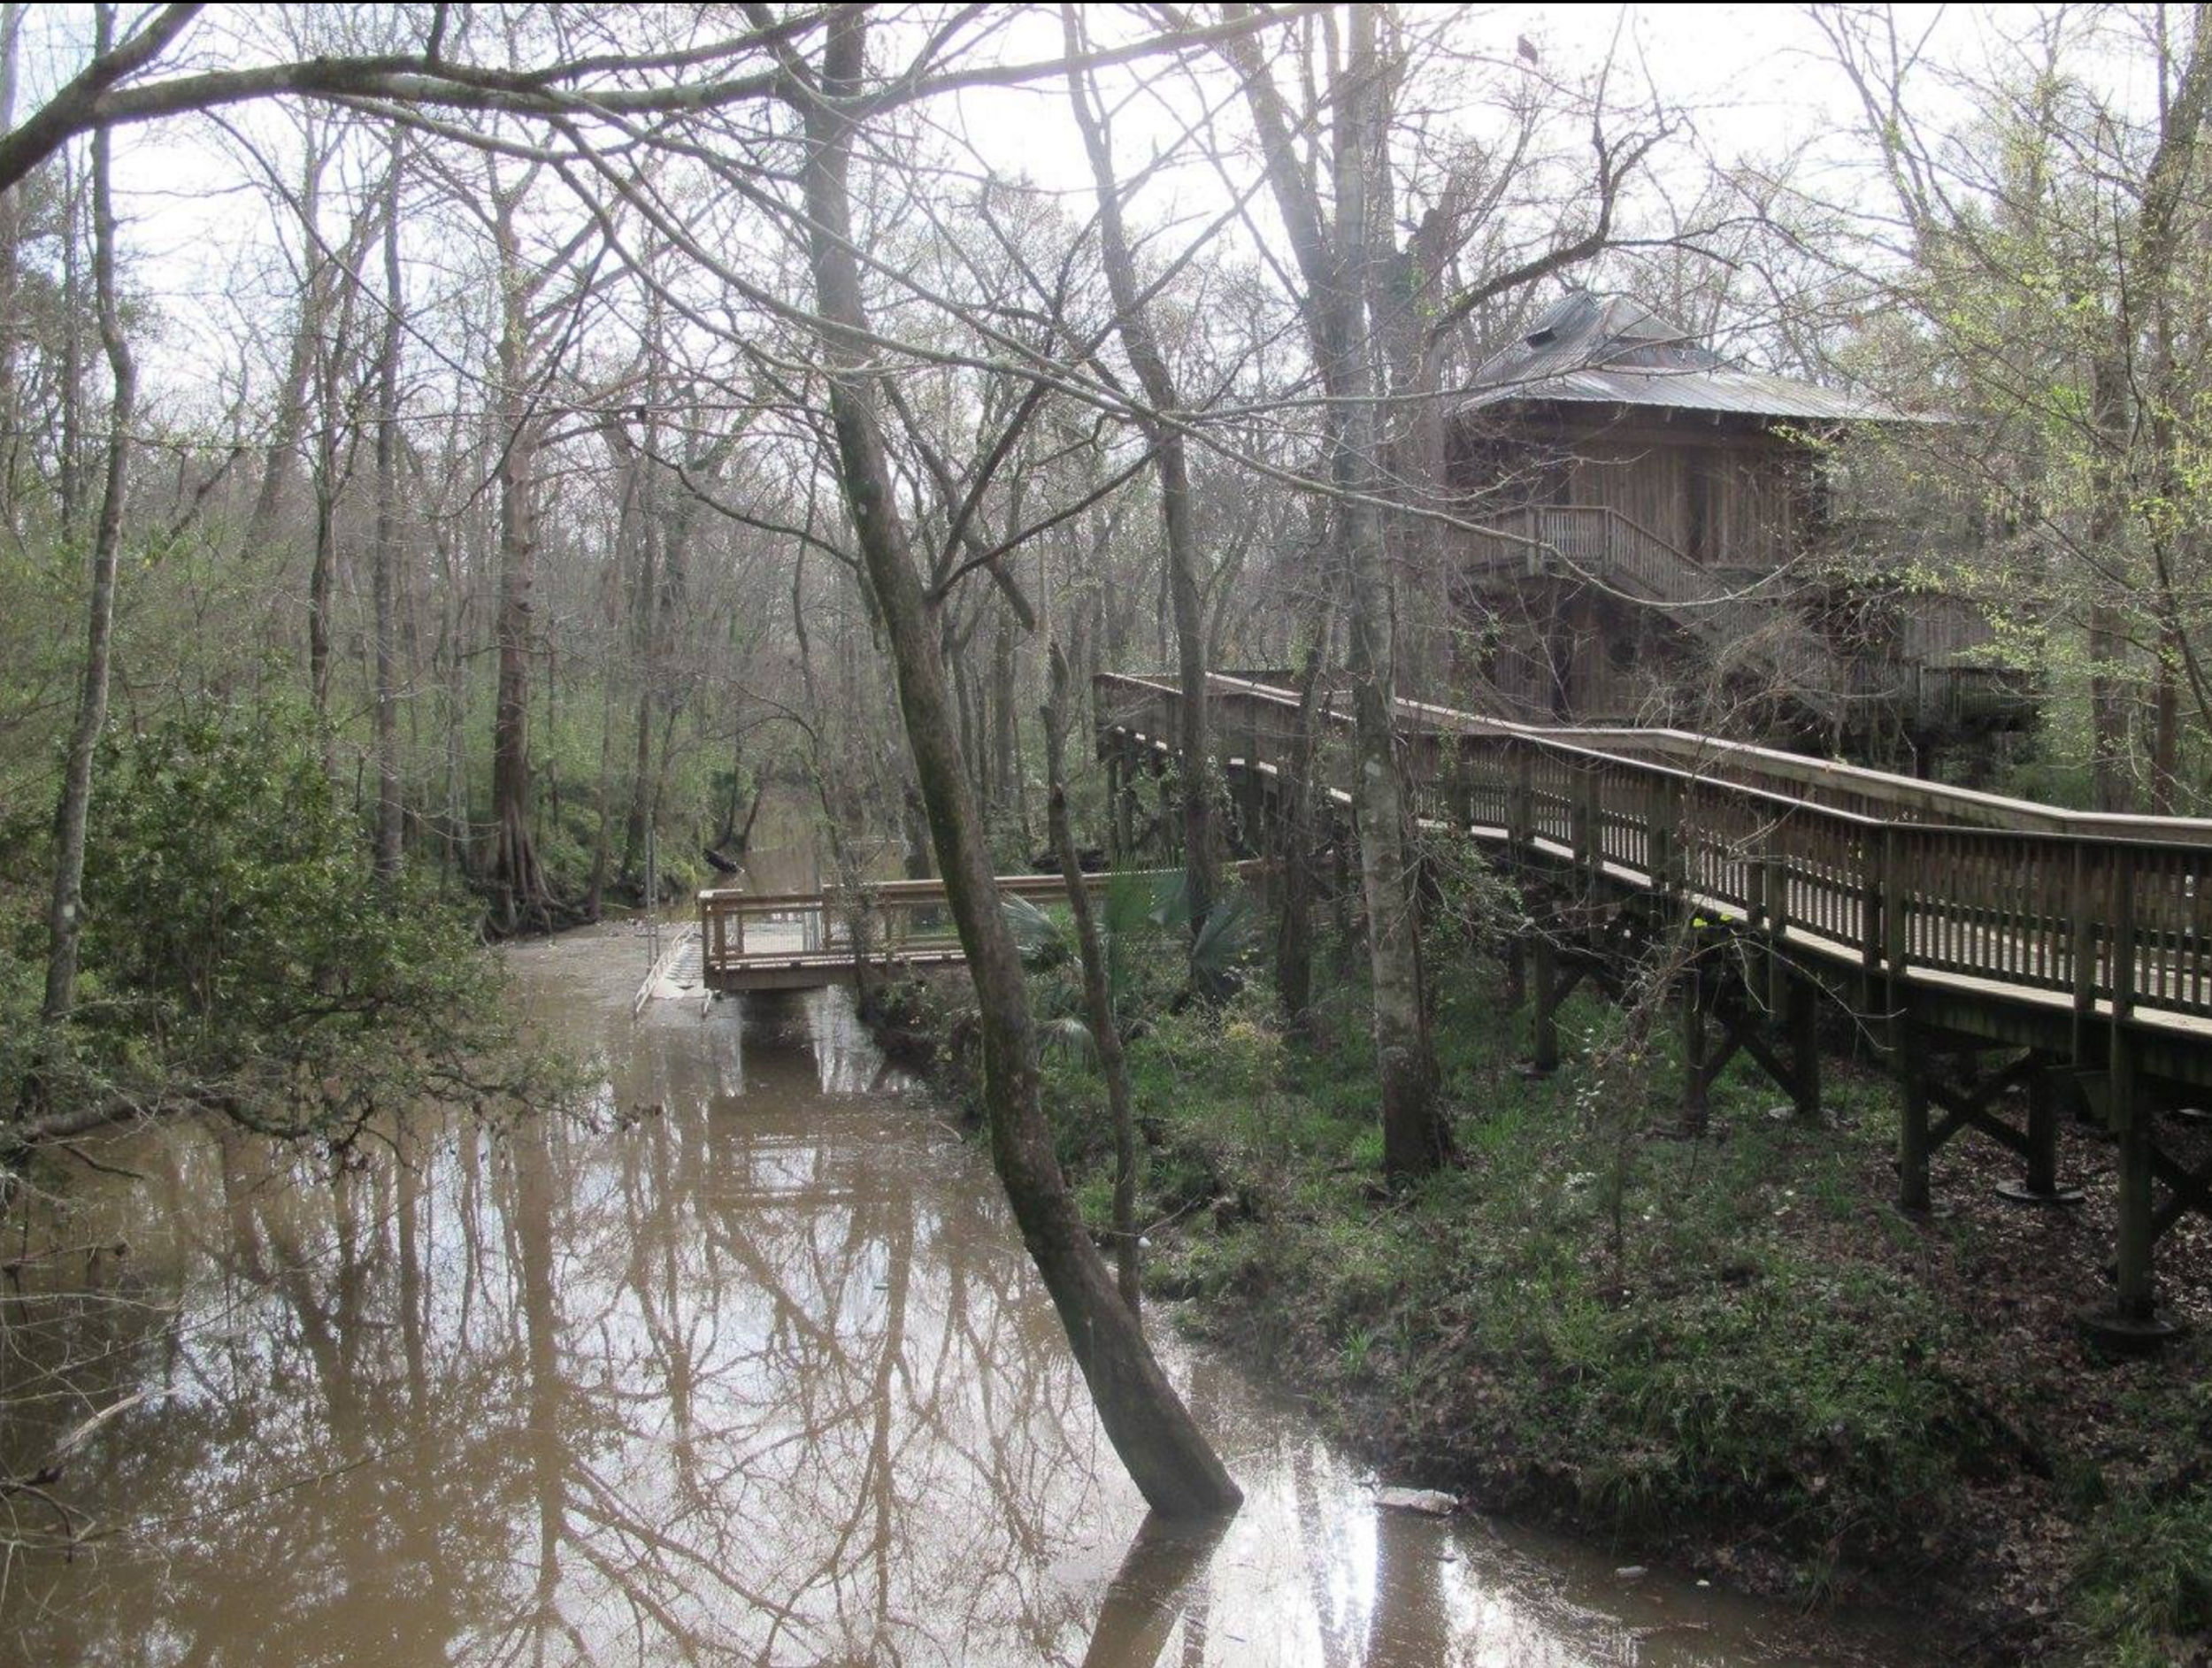 The Nature Station offers a variety of classes for all ages.  It is also the location of a paddle boat launch.  Get dropped off at the nature station, enjoy a hike then paddle down to Vermilionville for lunch at Cafe Maman.